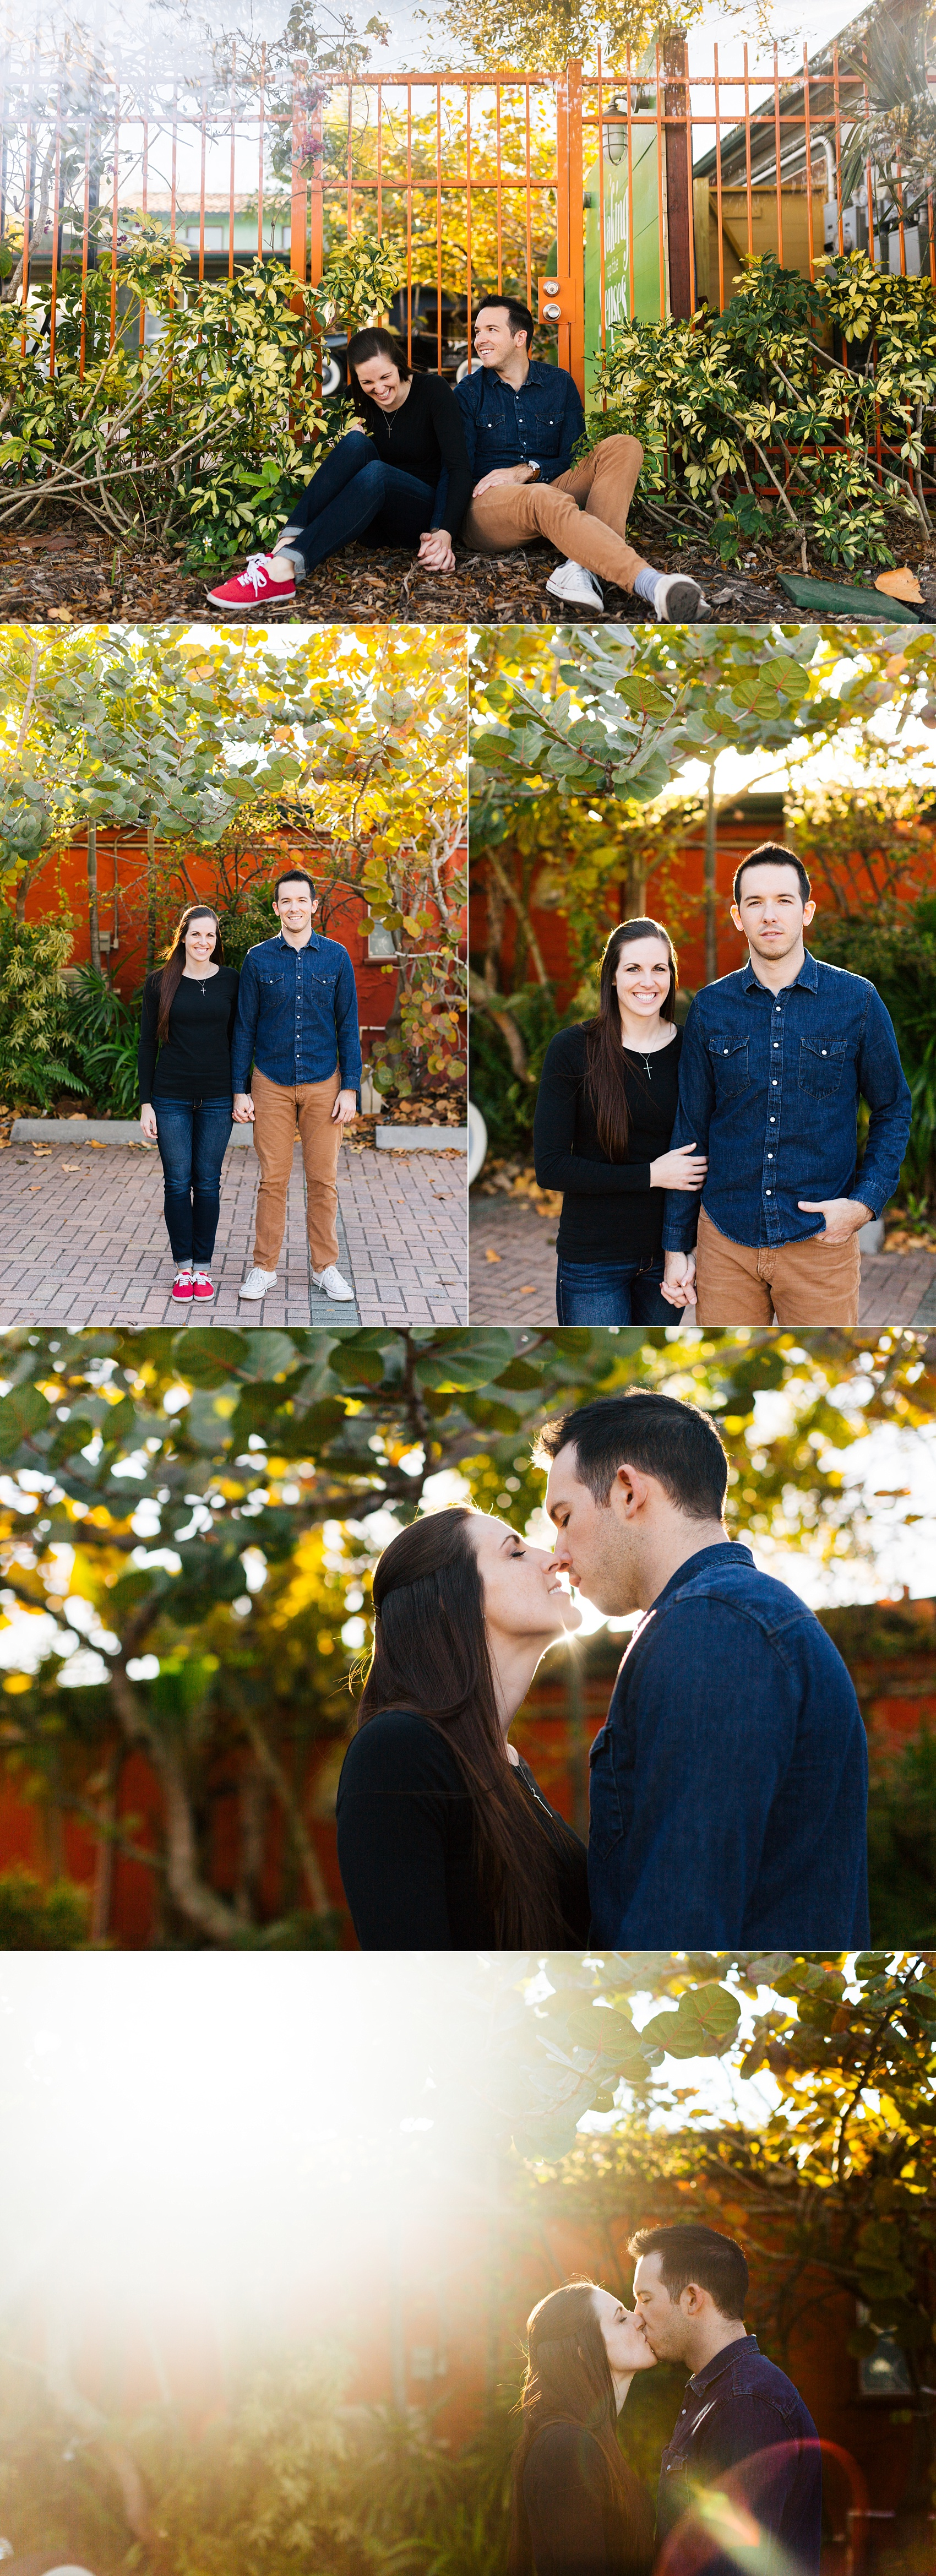 downtown st pete engagement session steve lindsey-3